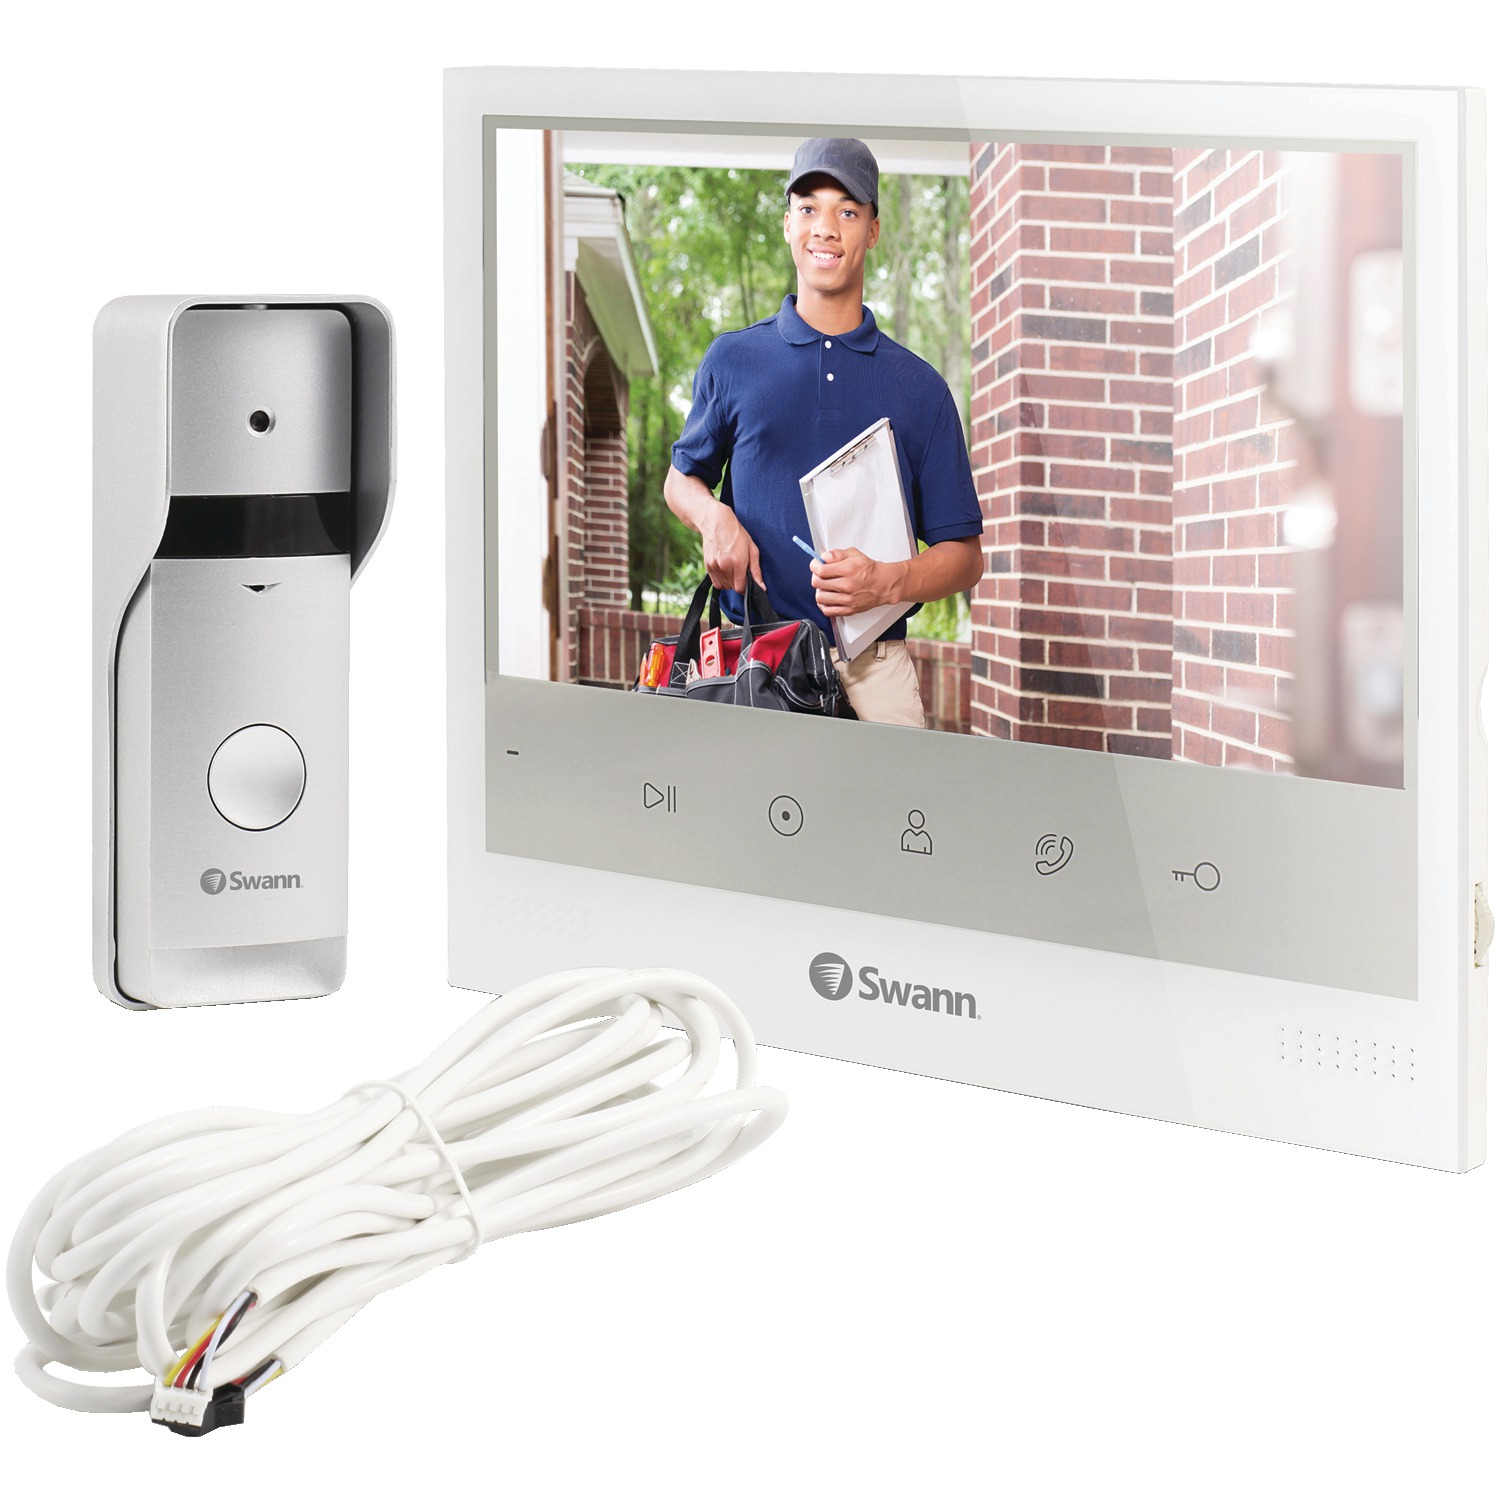 "Swann SWADS-DP885C-US Wired Doorphone With 7"" Monitor"